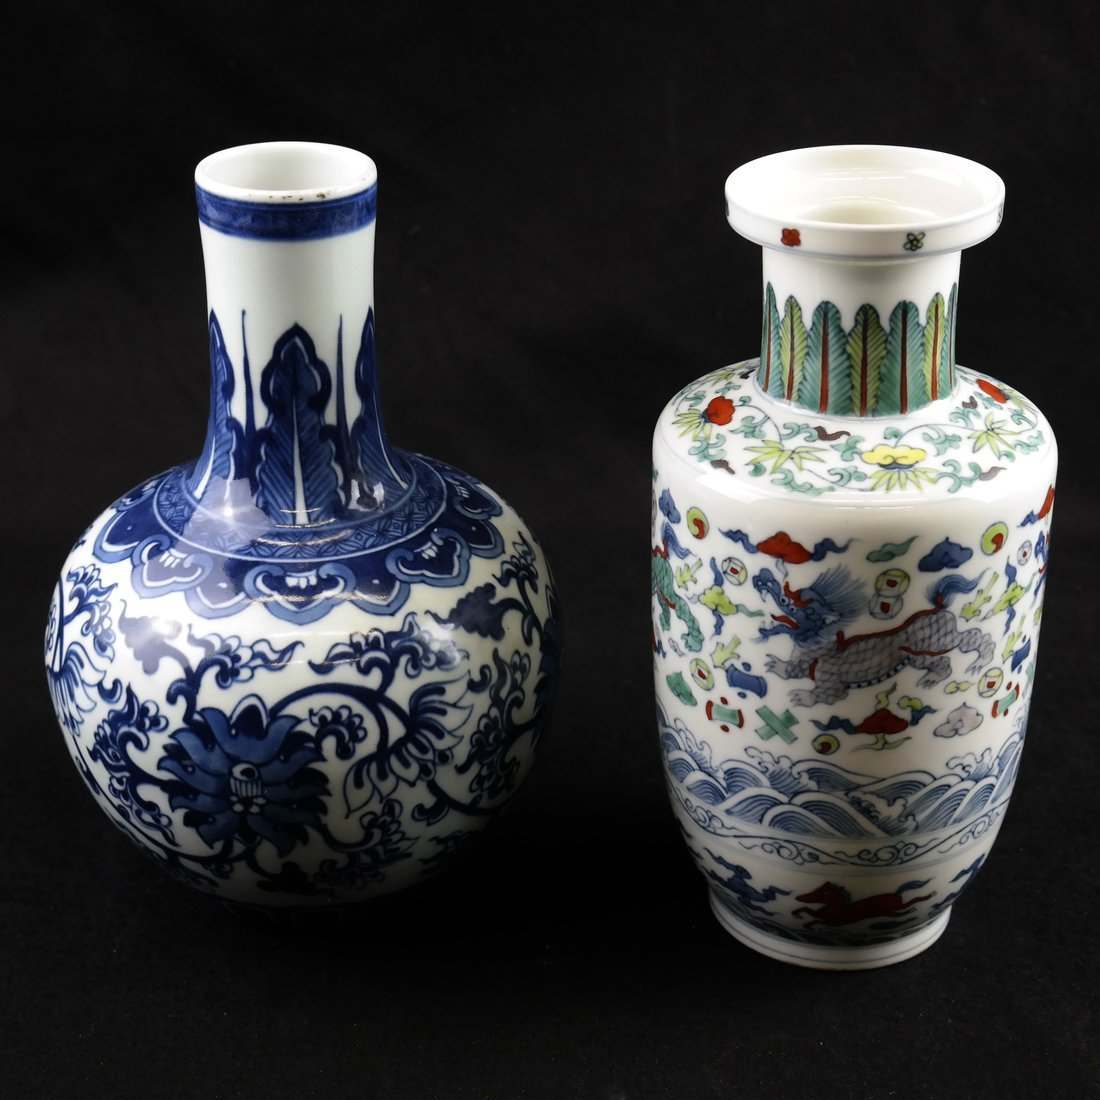 Two Various Asian-Style Vases